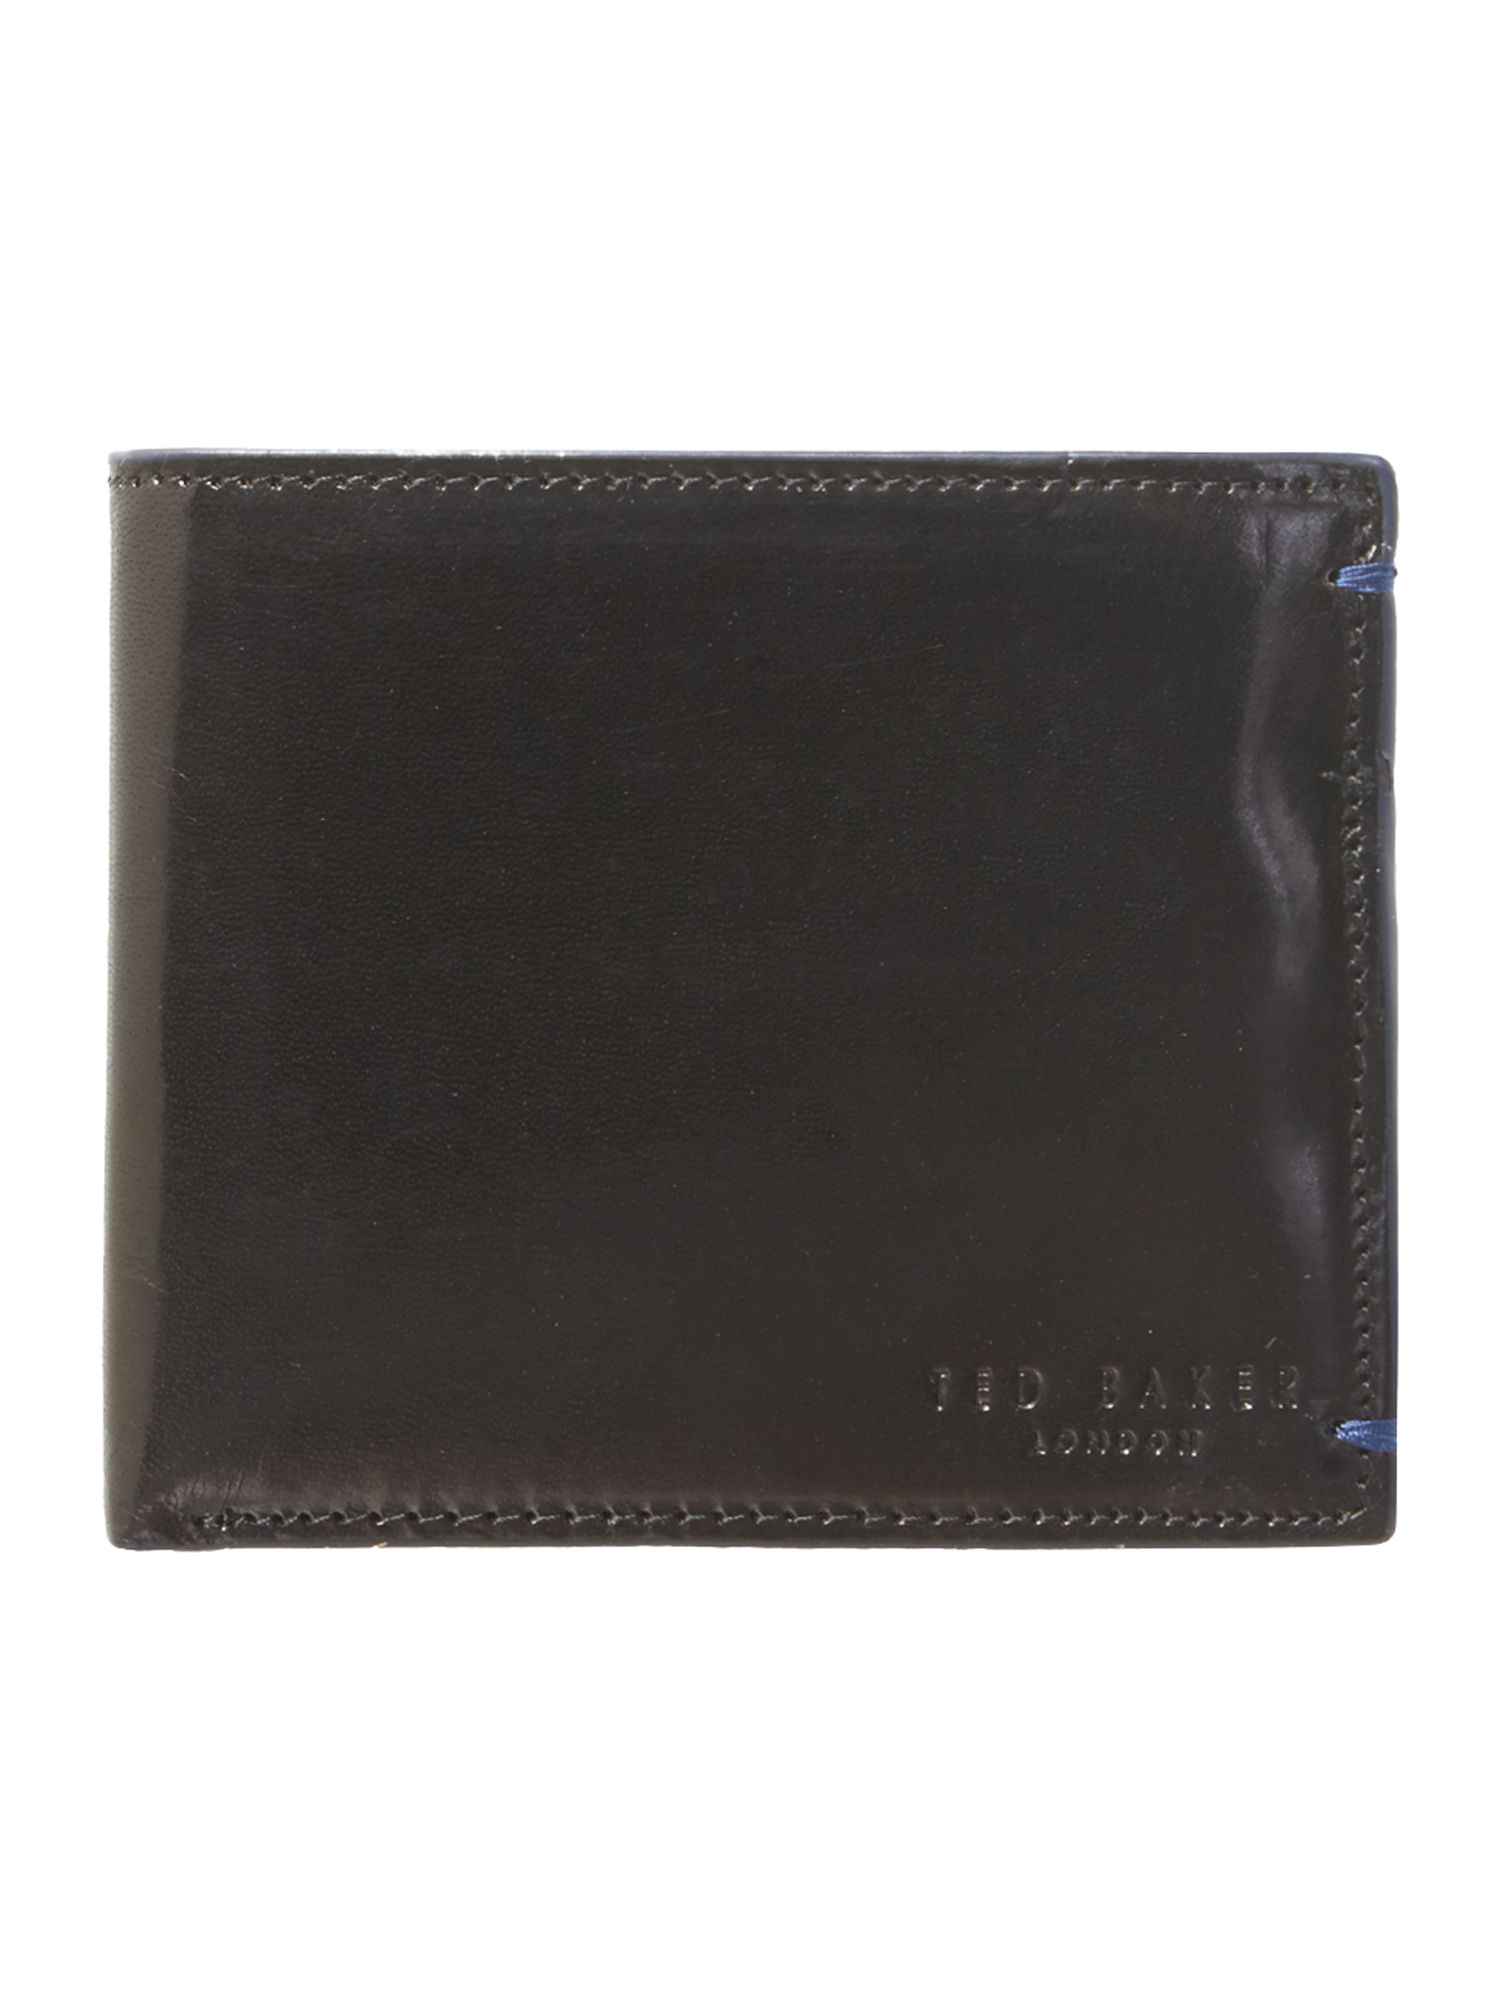 Edge paint billfold wallet